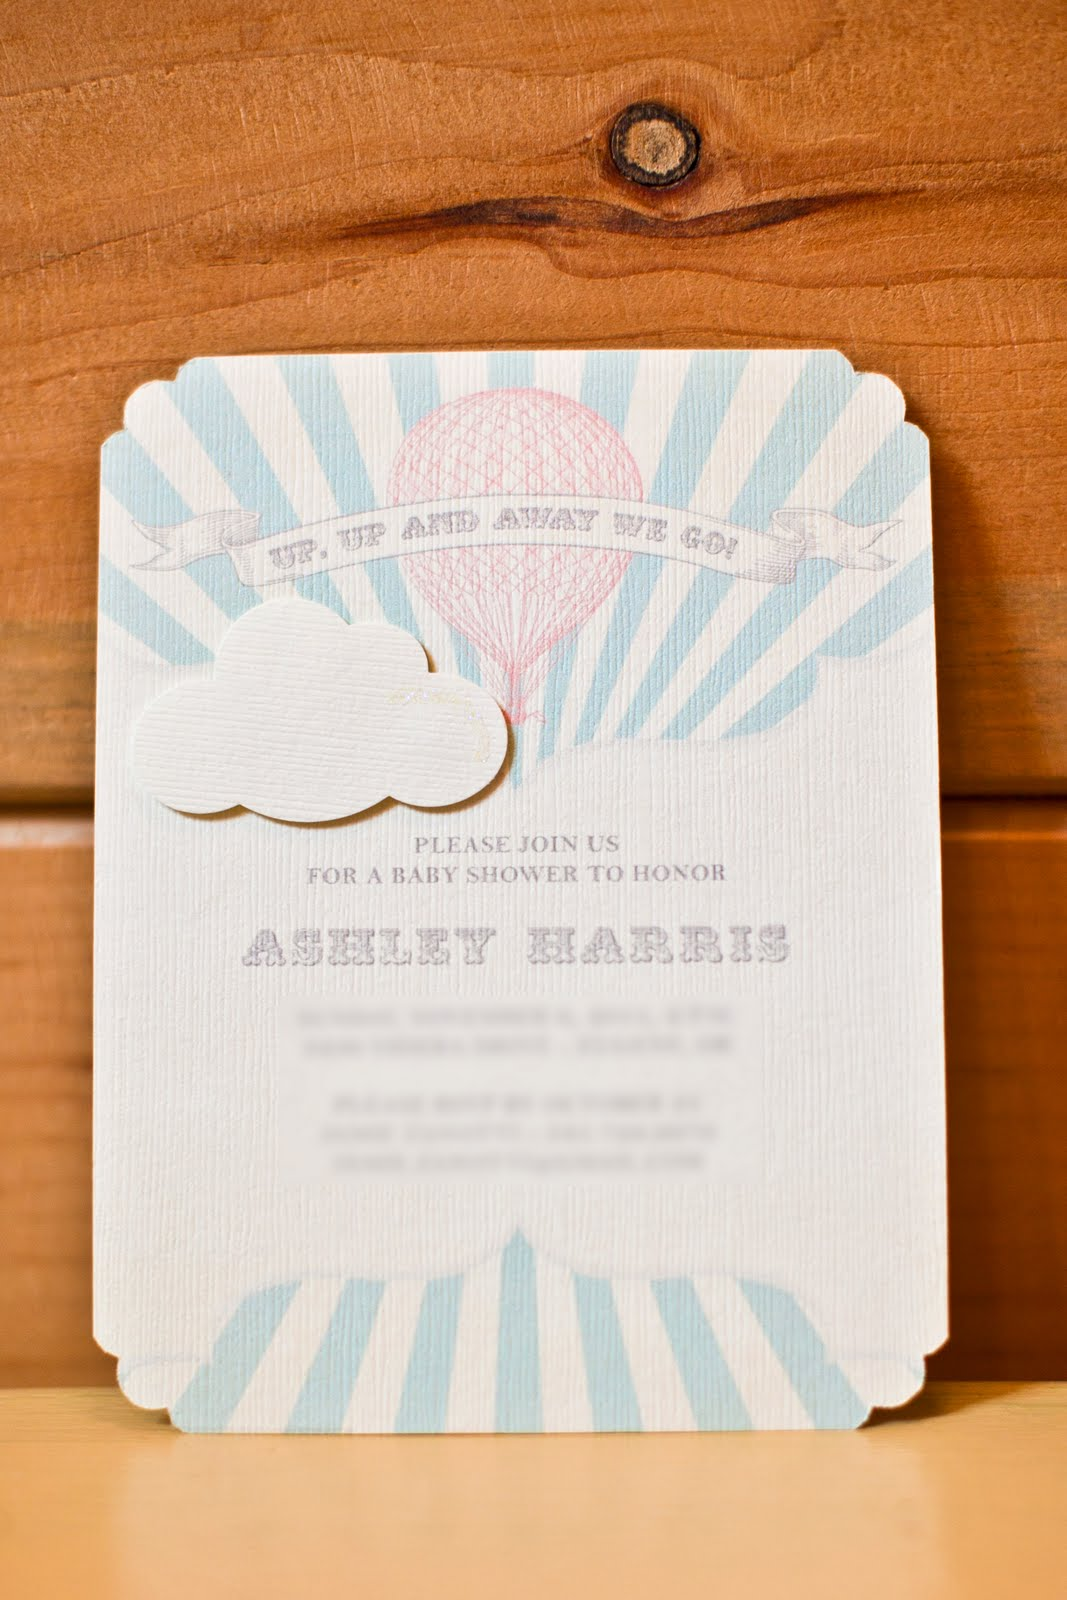 Hot Air Balloon Baby Shower Cake Inspired by Invitation